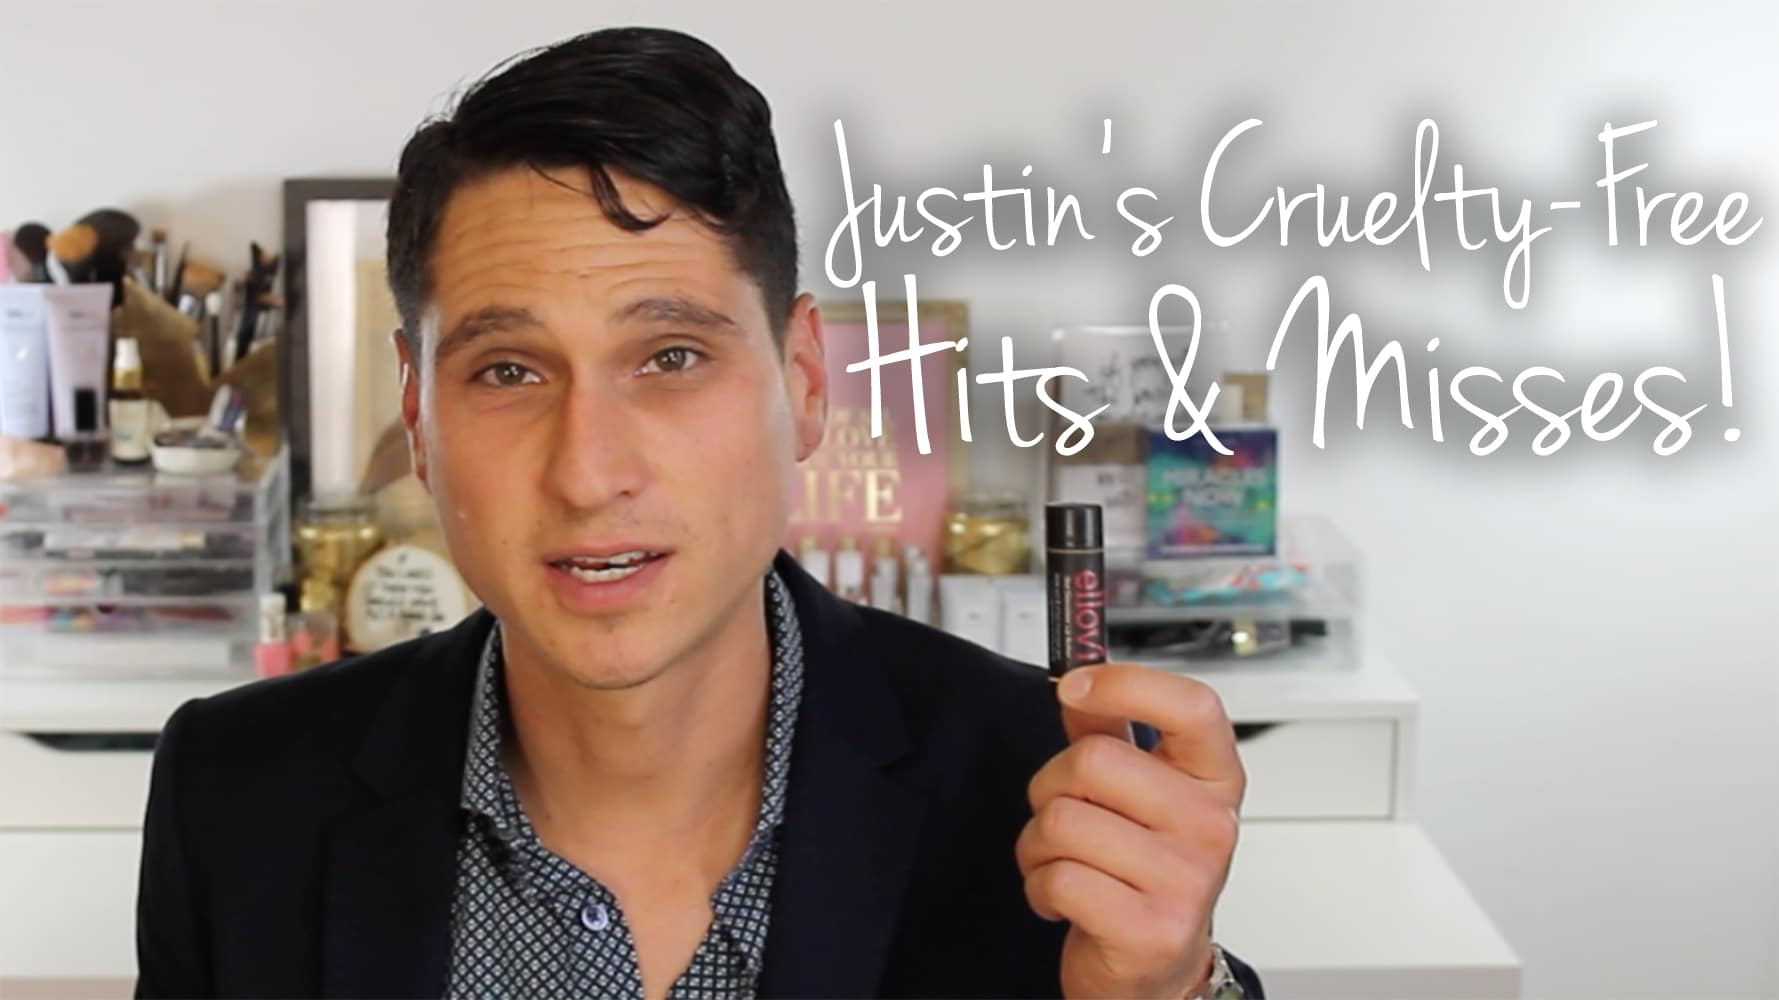 Justin's Cruelty Free Hits & Misses Video